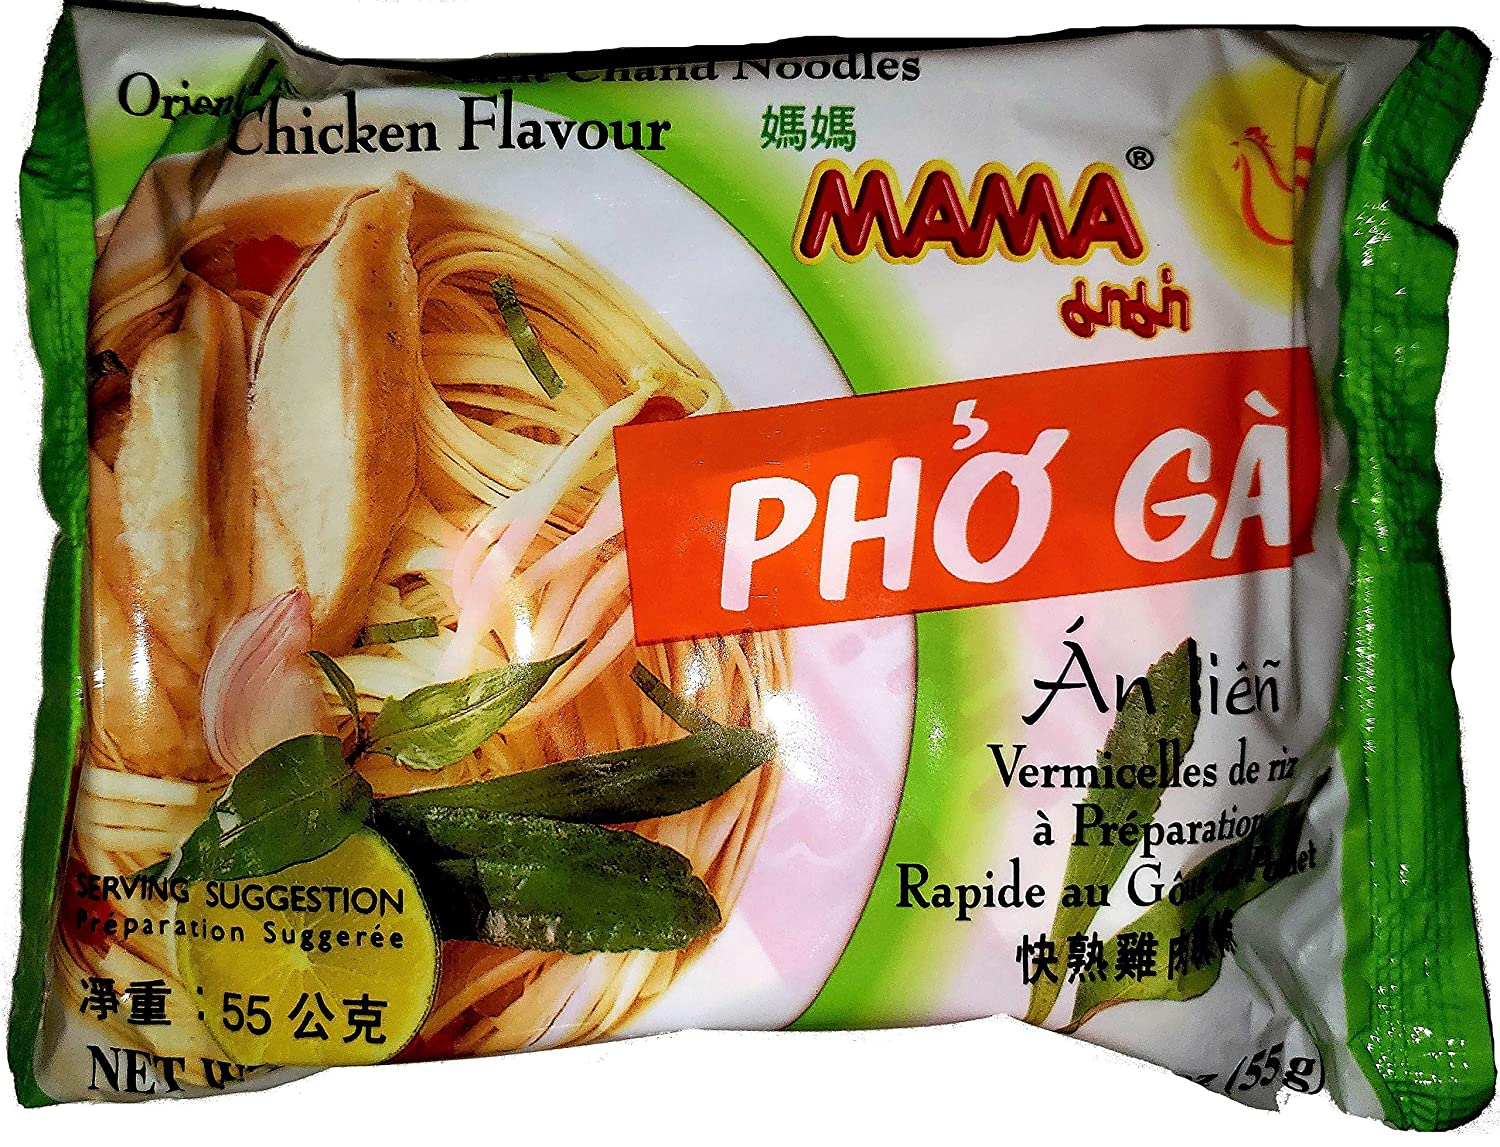 Mama Instant Noodles San Jose Mall Pho Superior Ga Soup Chicken Chand Noodle